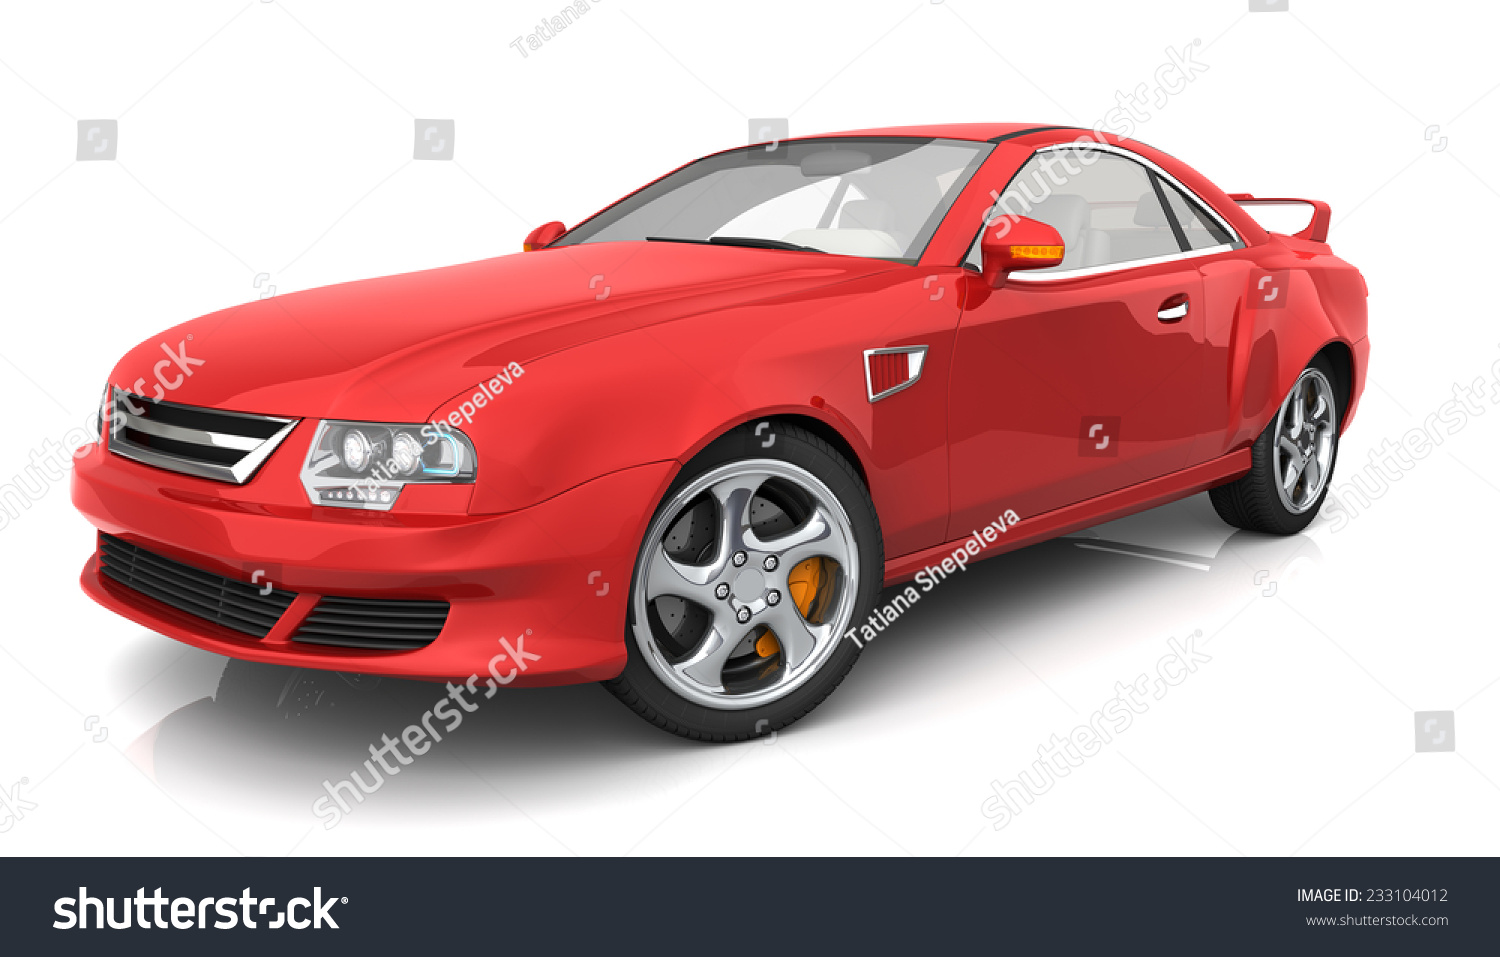 high resolution car images